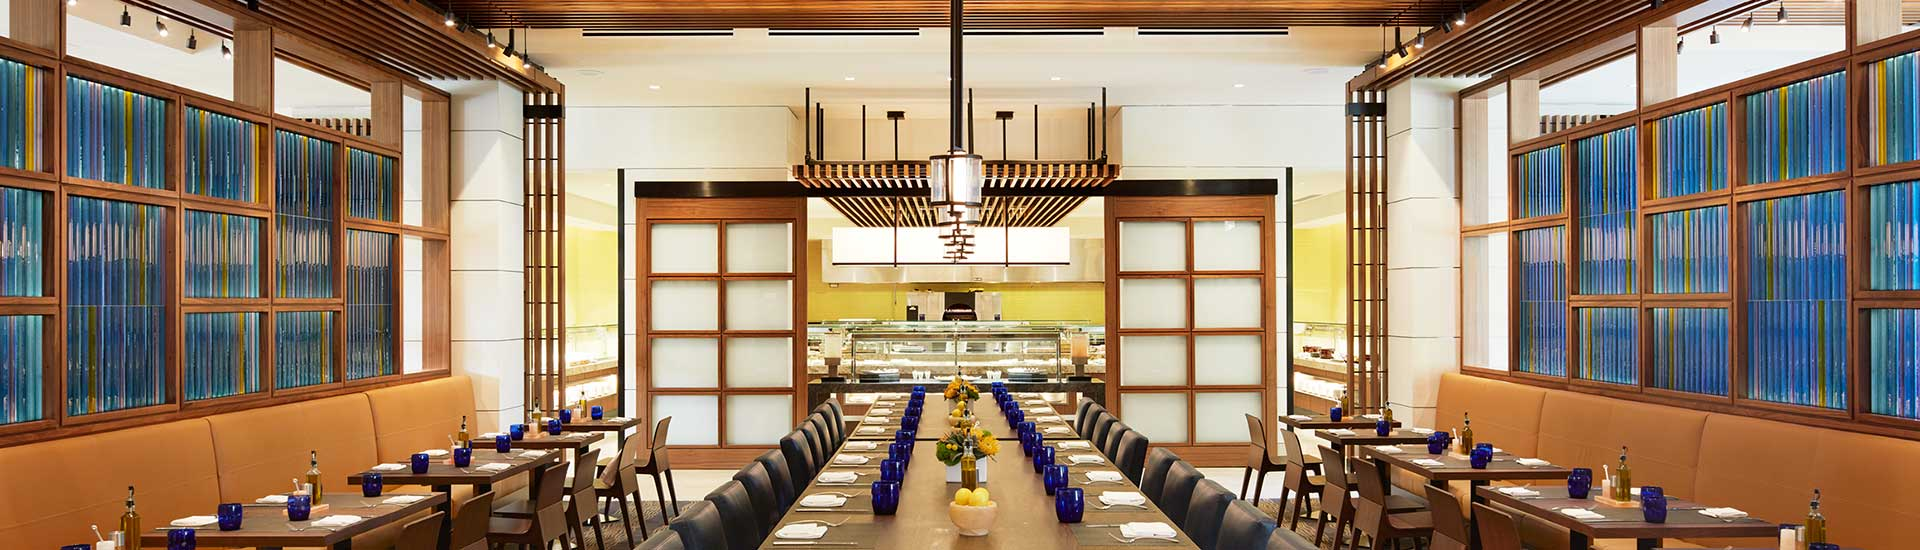 Plateia restaurant at ucla luskin conference center and hotel